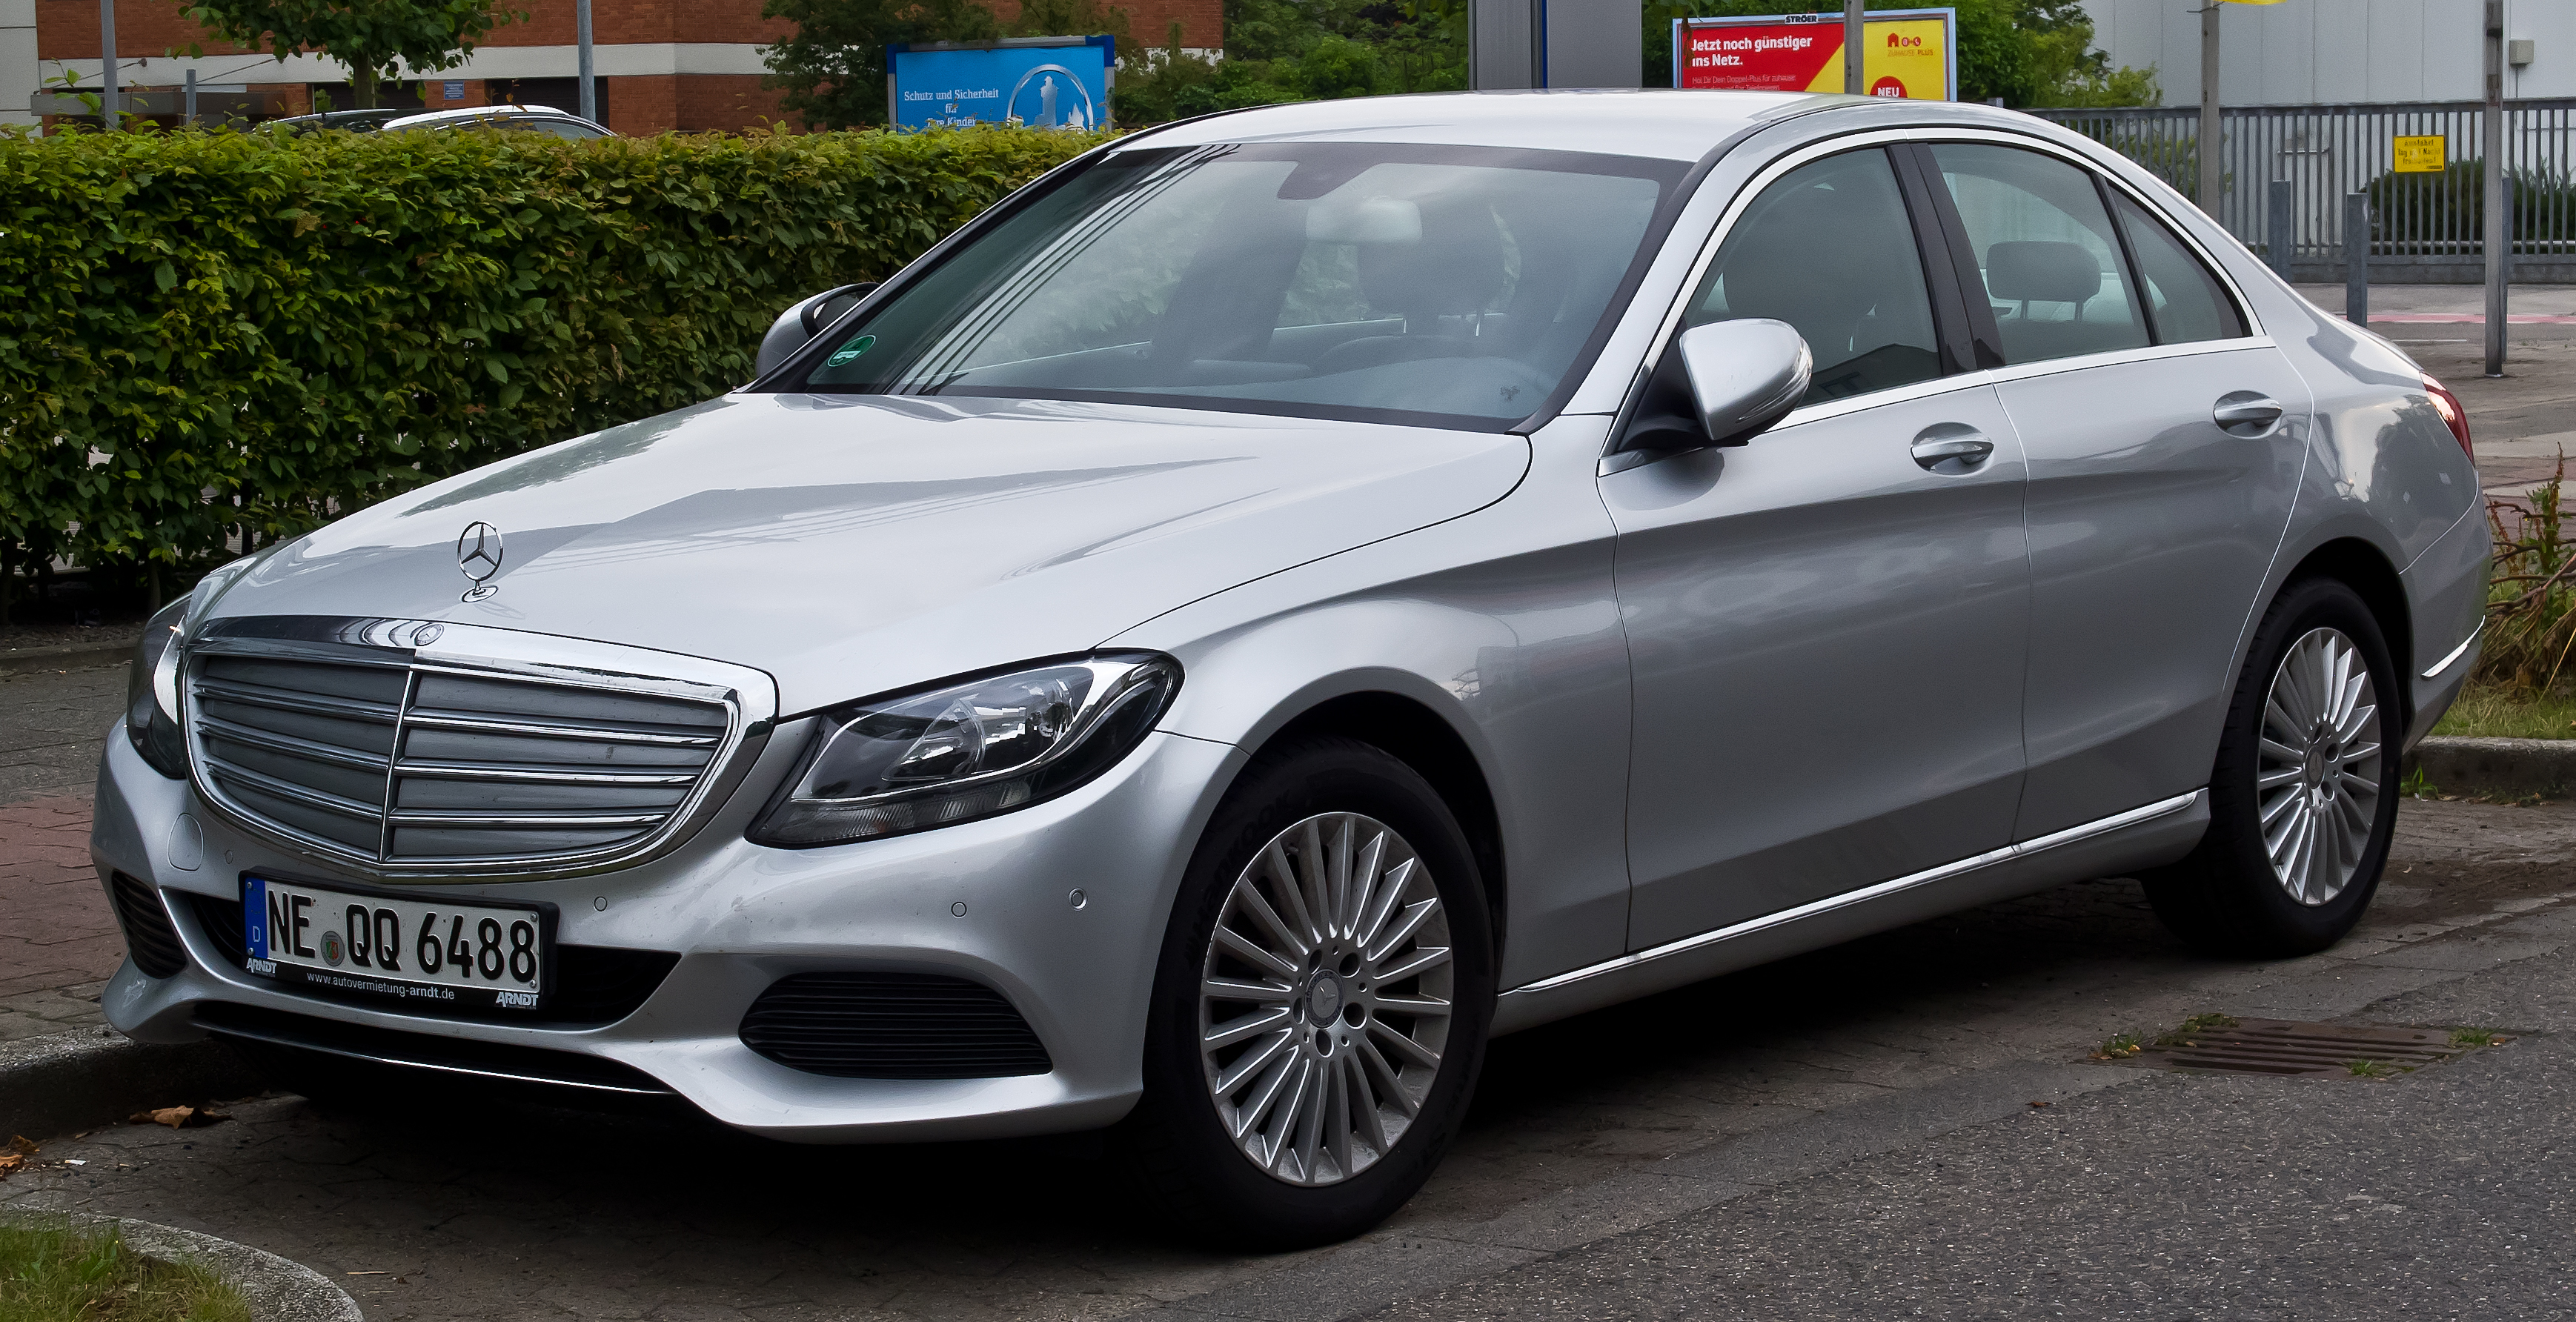 Mercedes benz c class 2017 prices in pakistan pictures for Average cost of a mercedes benz